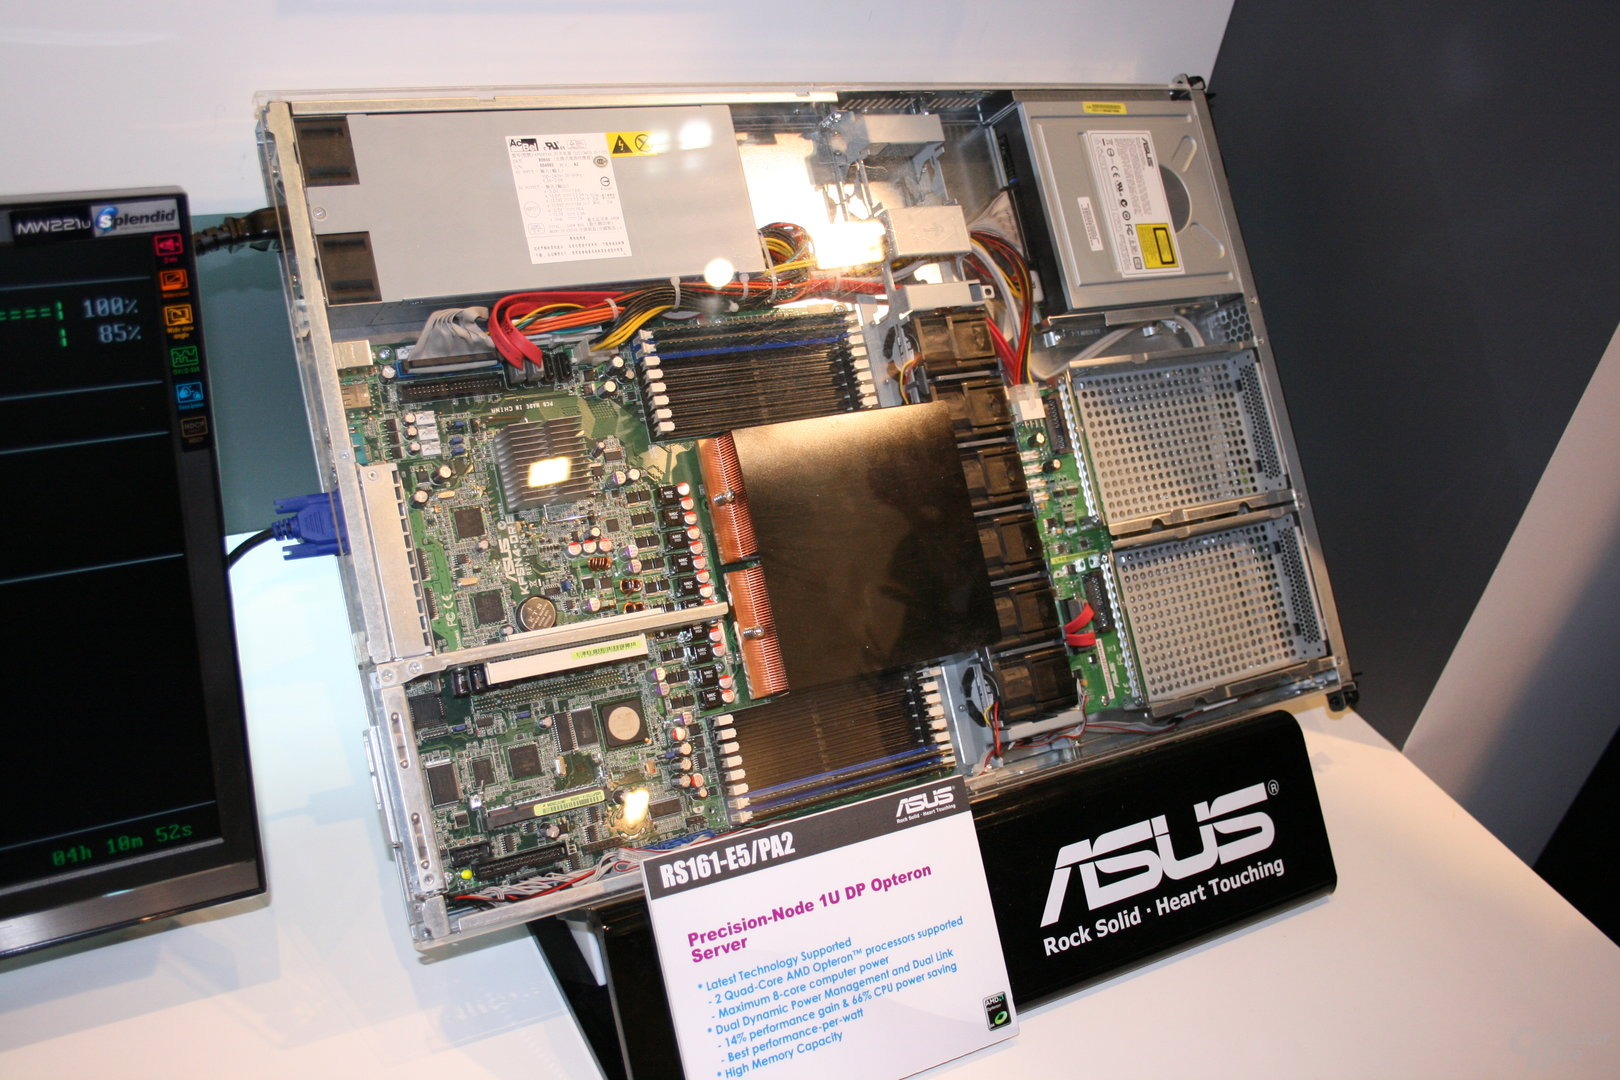 Cebit 2008: Asus Server- und Workstation Mainboard